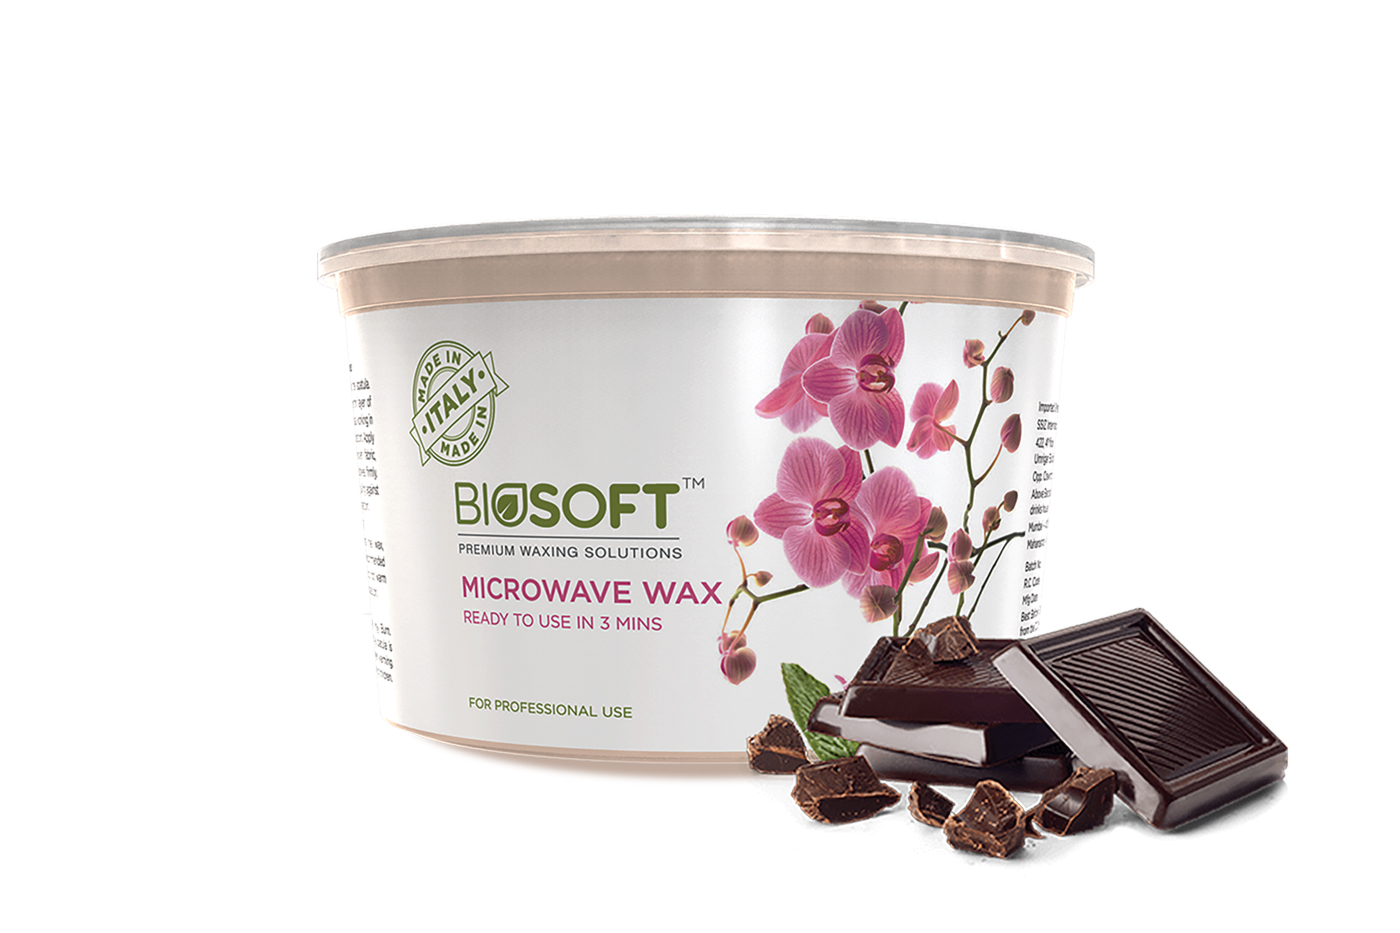 Therapeutic waxing experience with Biosoft